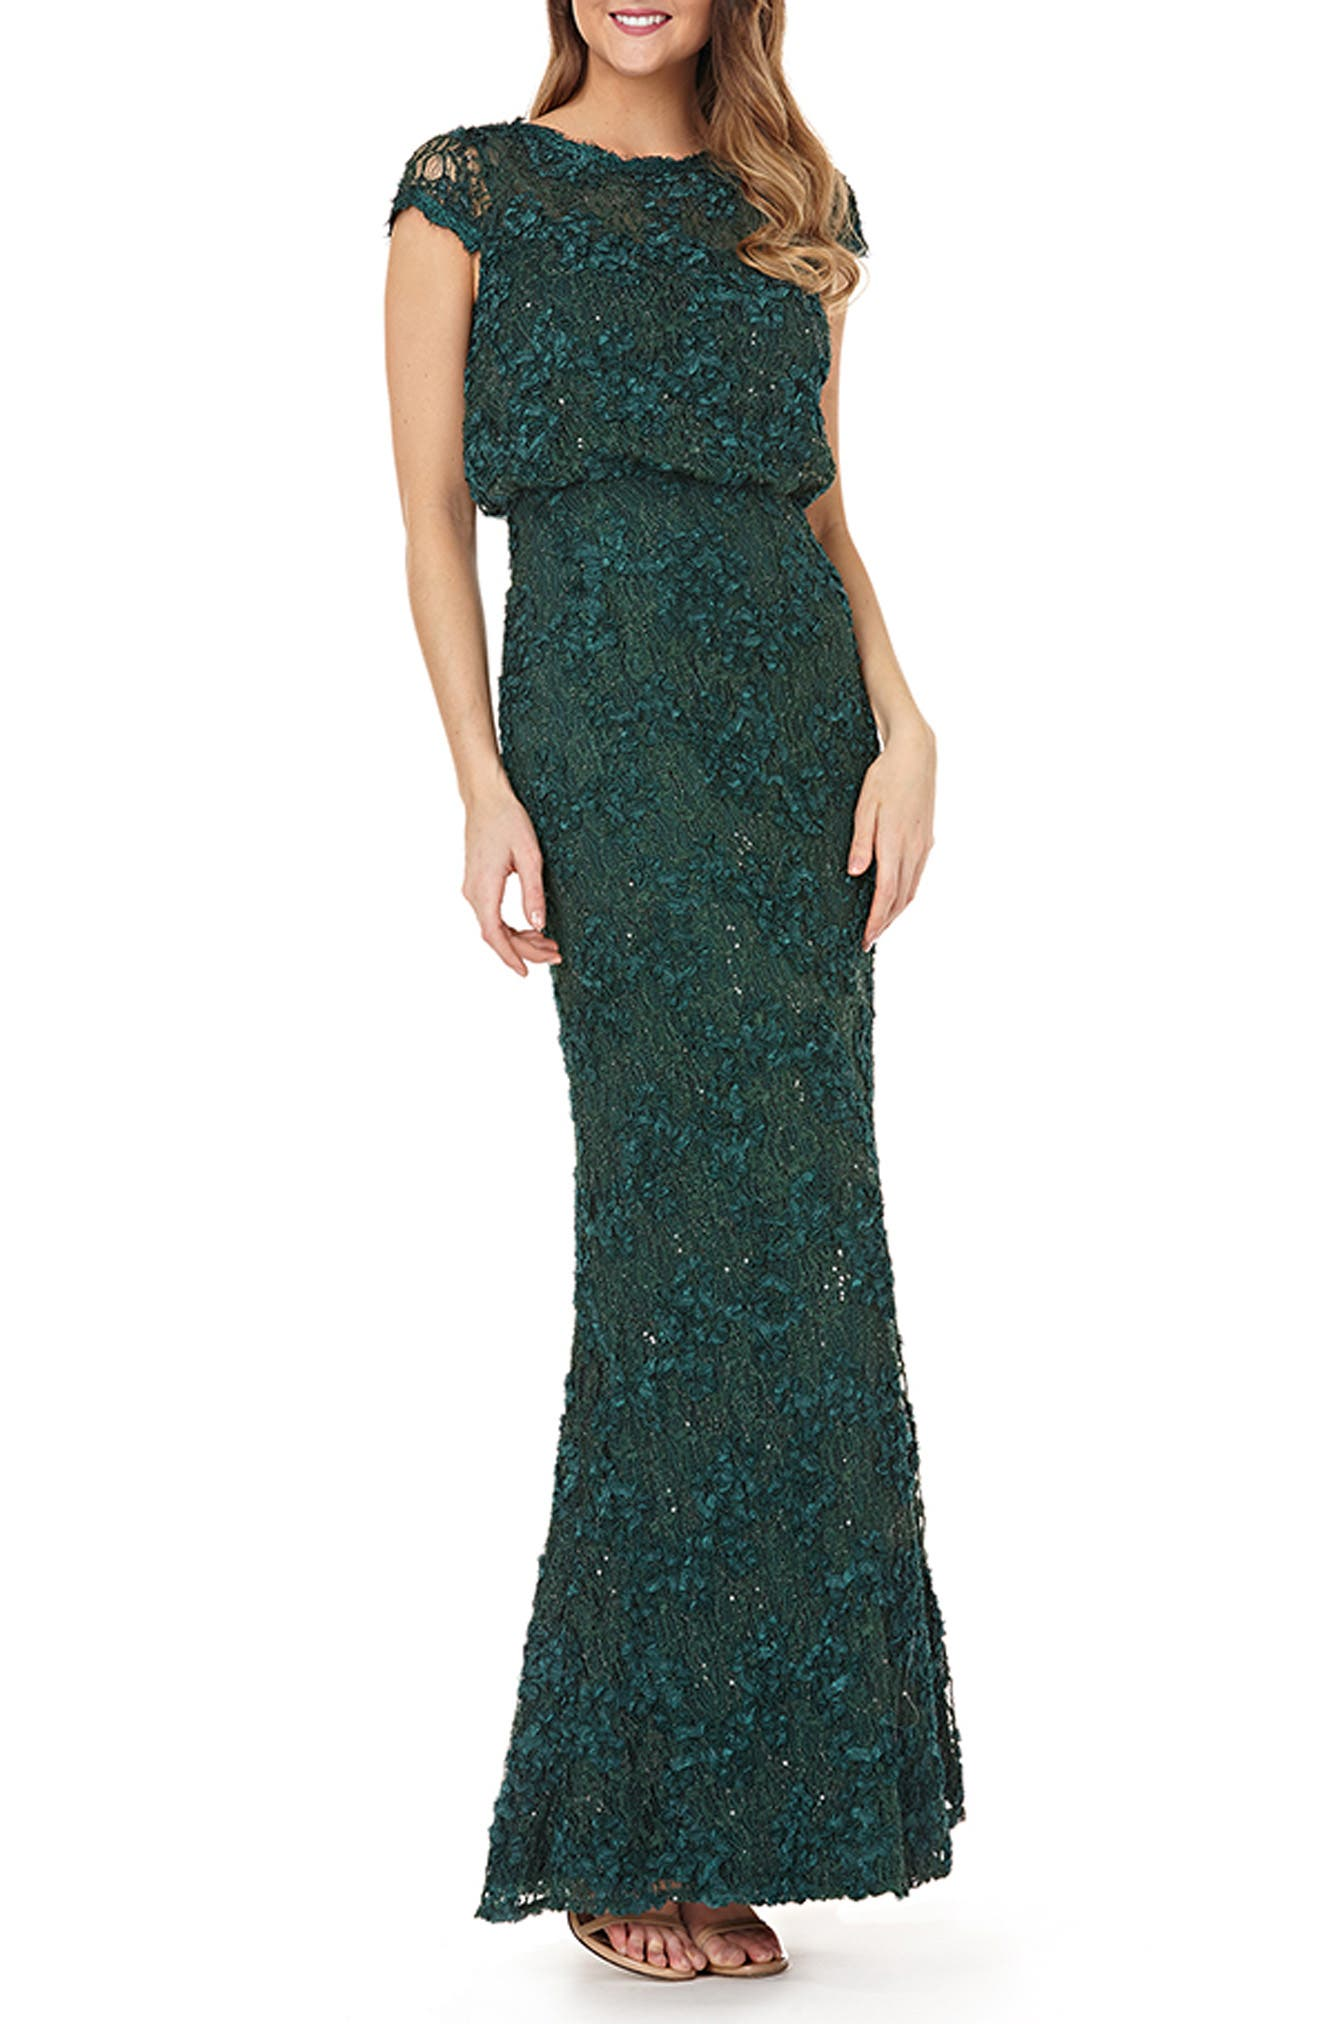 JS COLLECTIONS Sequin Lace Blouson Gown, Main, color, GREEN